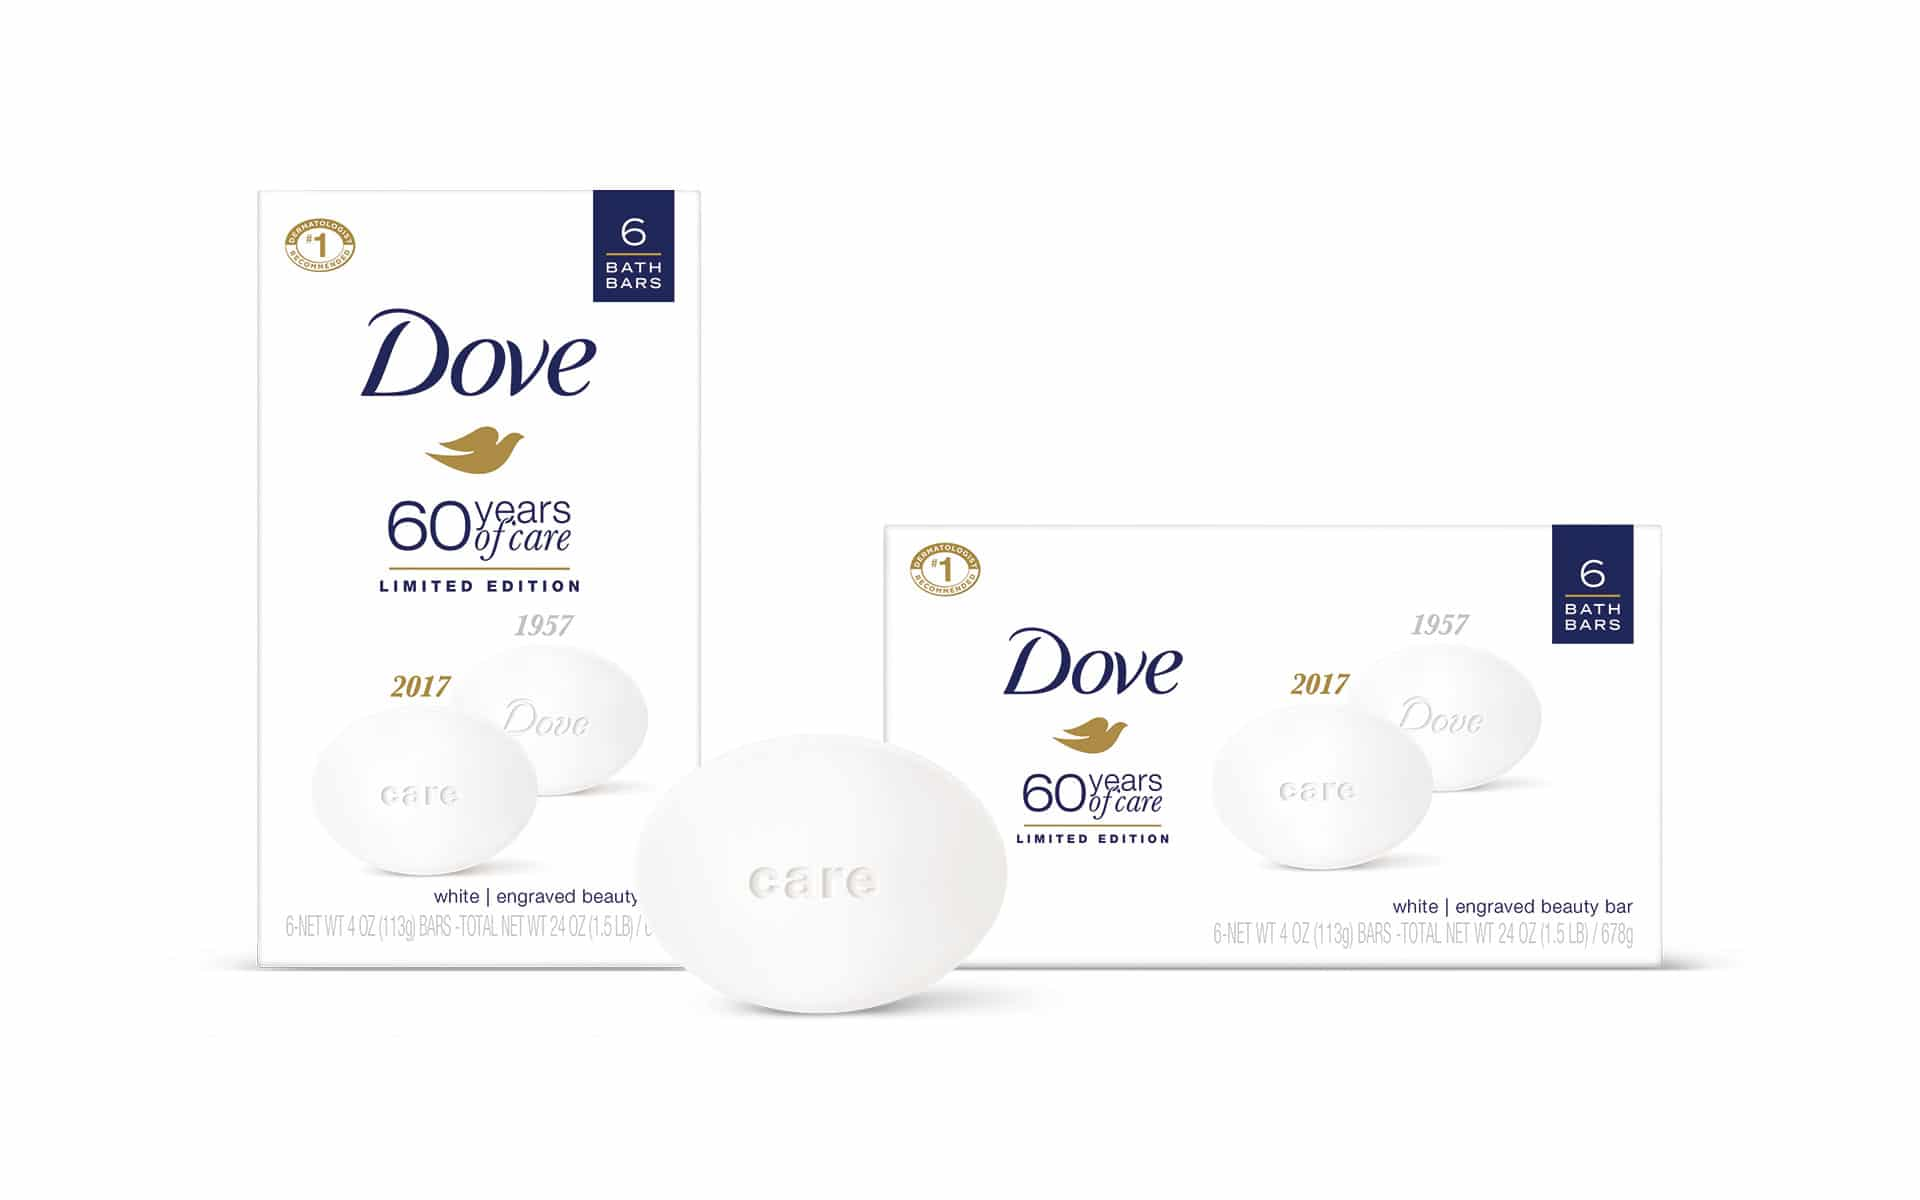 Dove 60th Anniversary - Packaging Design